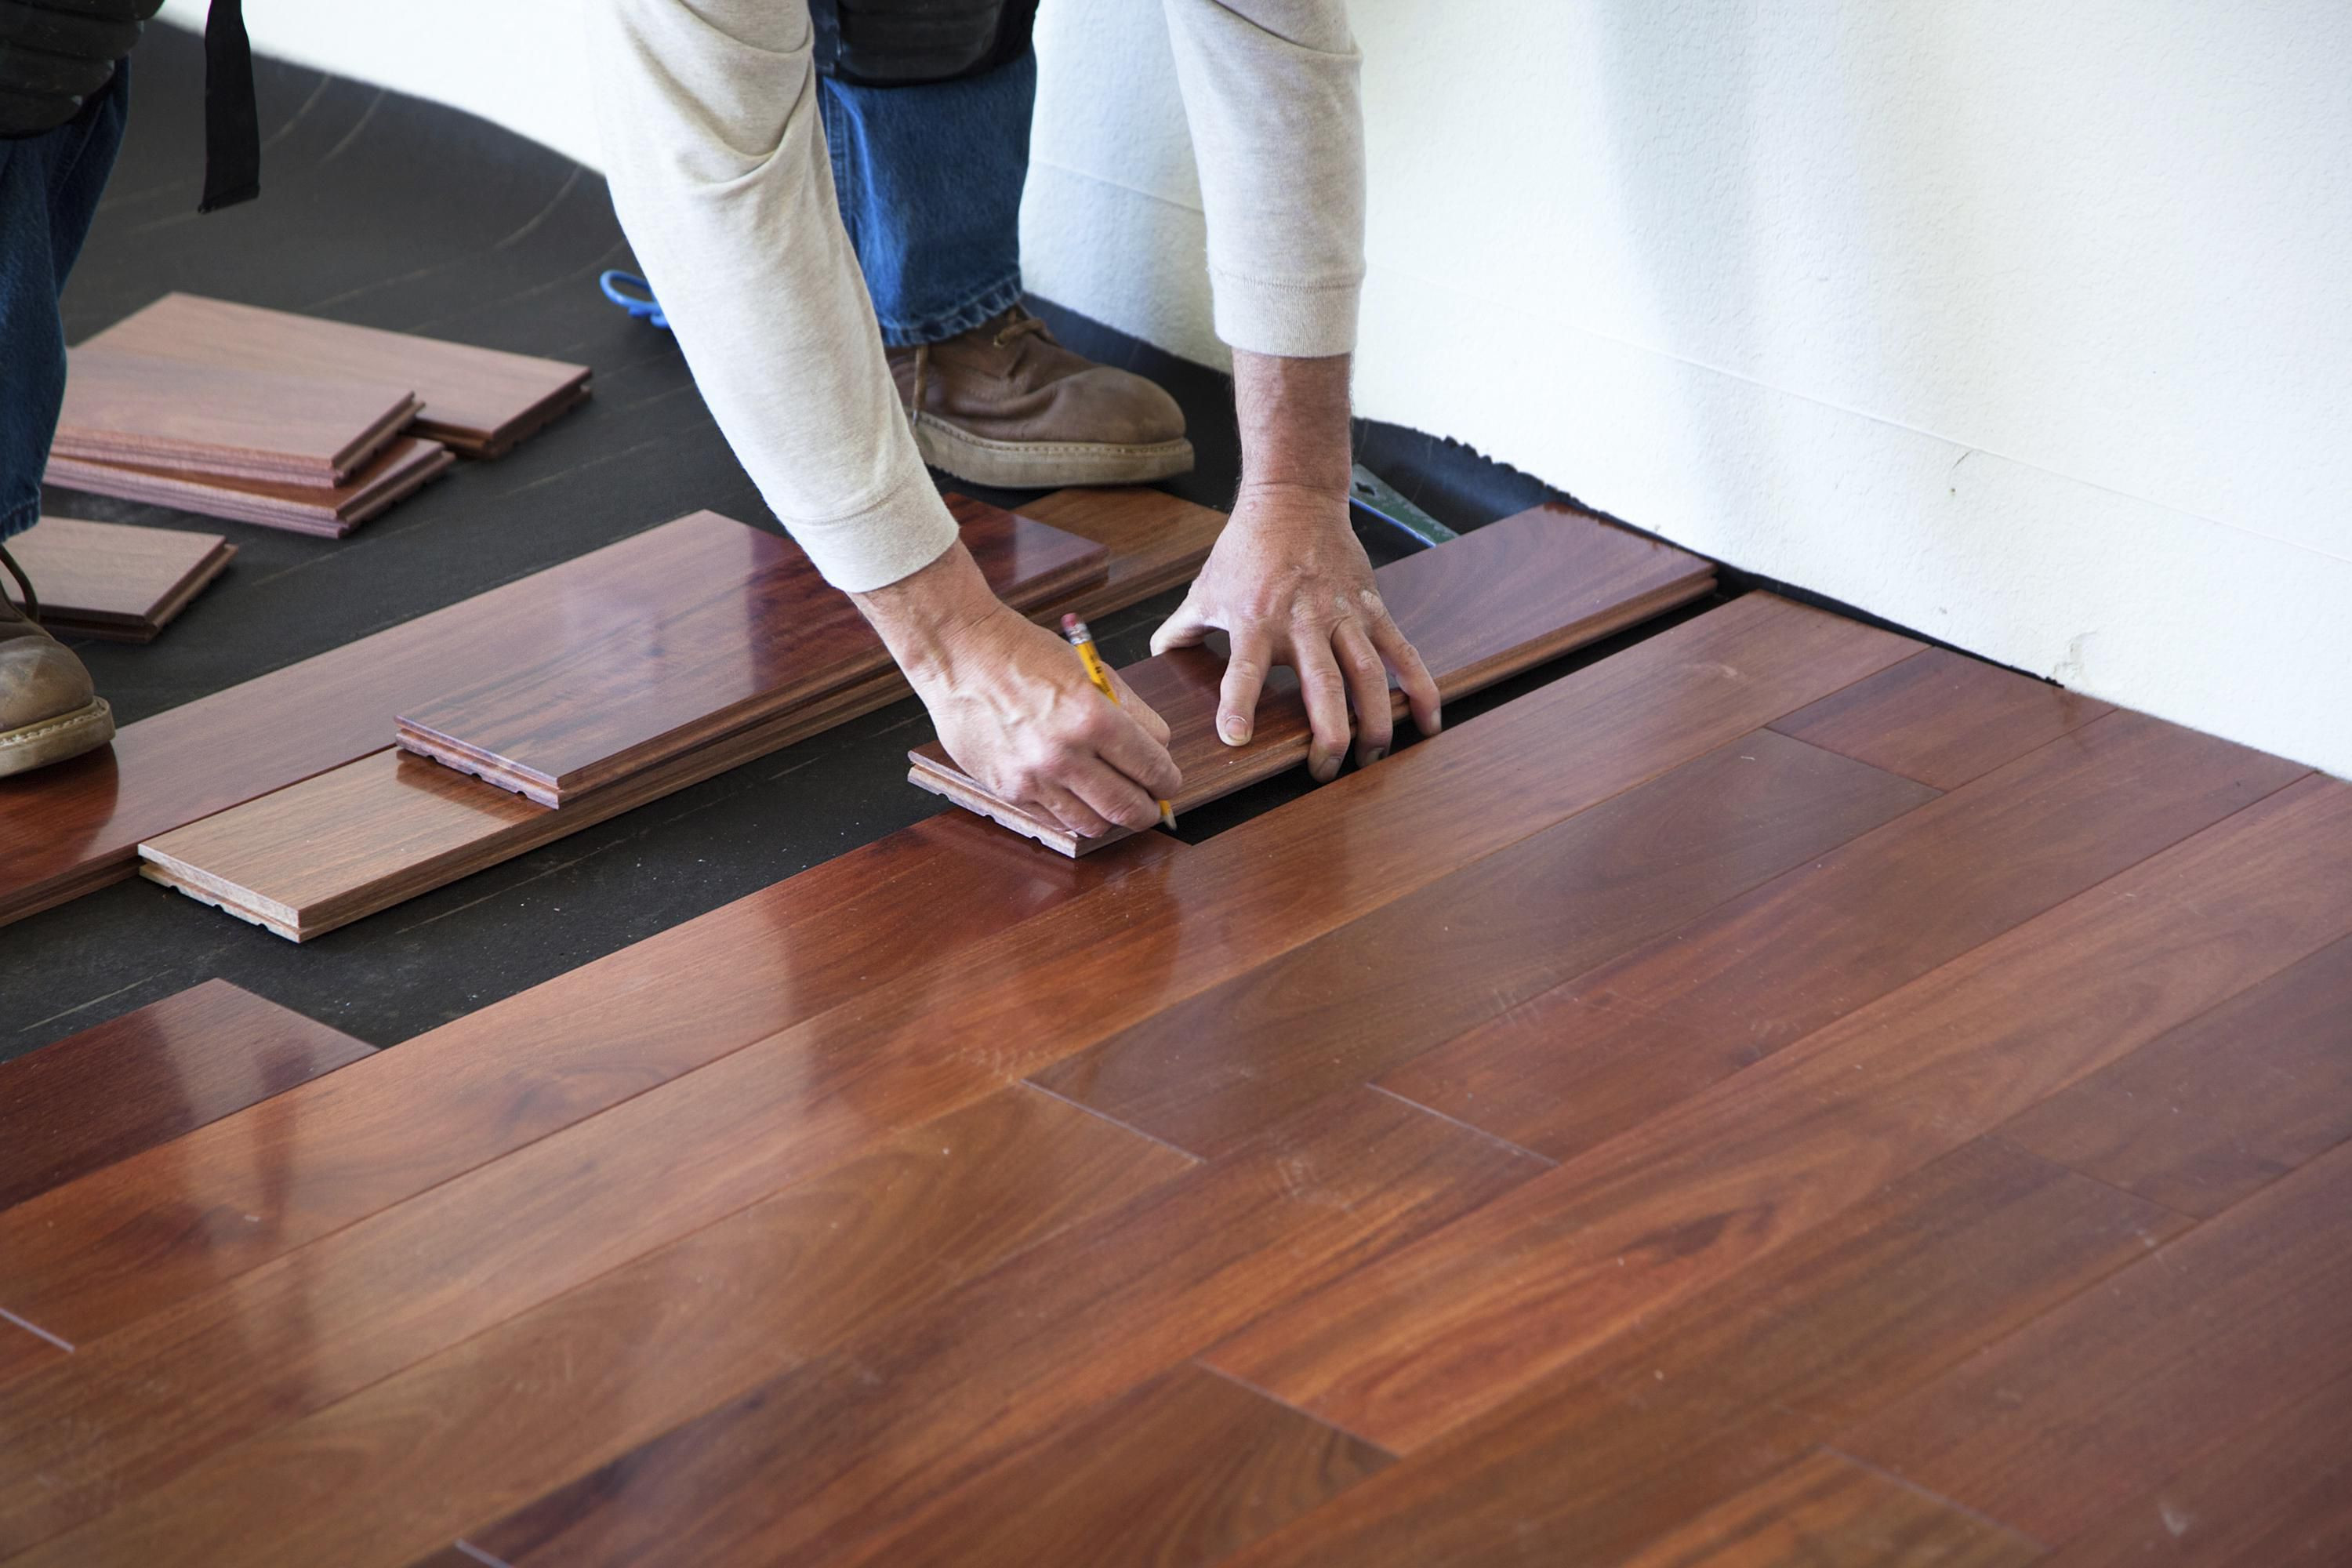 Avg Cost Of Hardwood Flooring Installed Of This is How Much Hardwood Flooring to order Inside 170040982 56a49f213df78cf772834e21